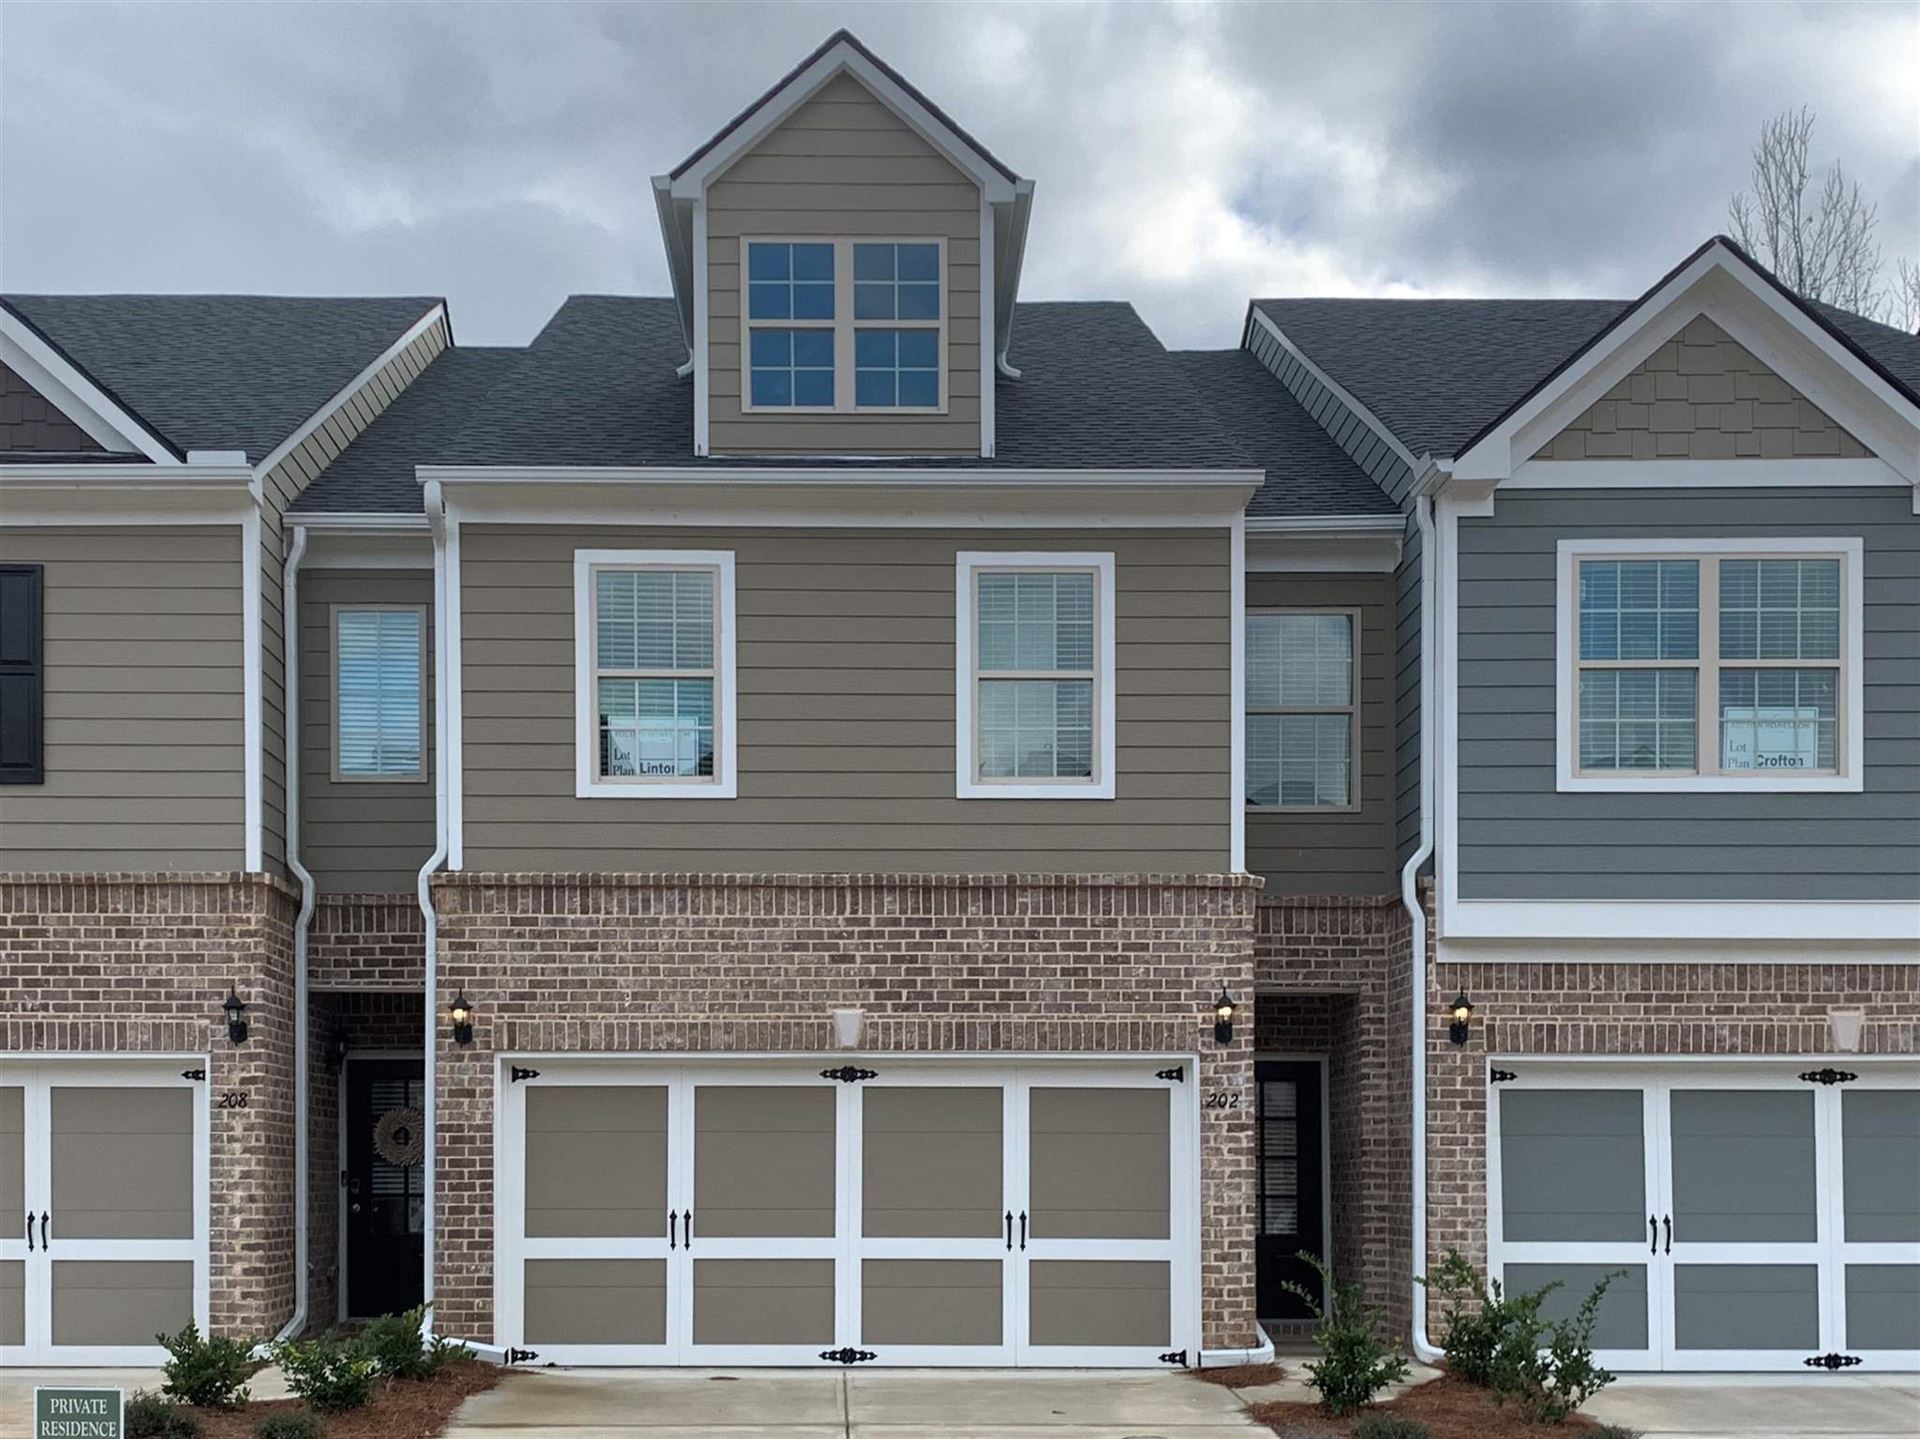 202 Trailside Way, Hiram, GA 30141 - #: 8812166